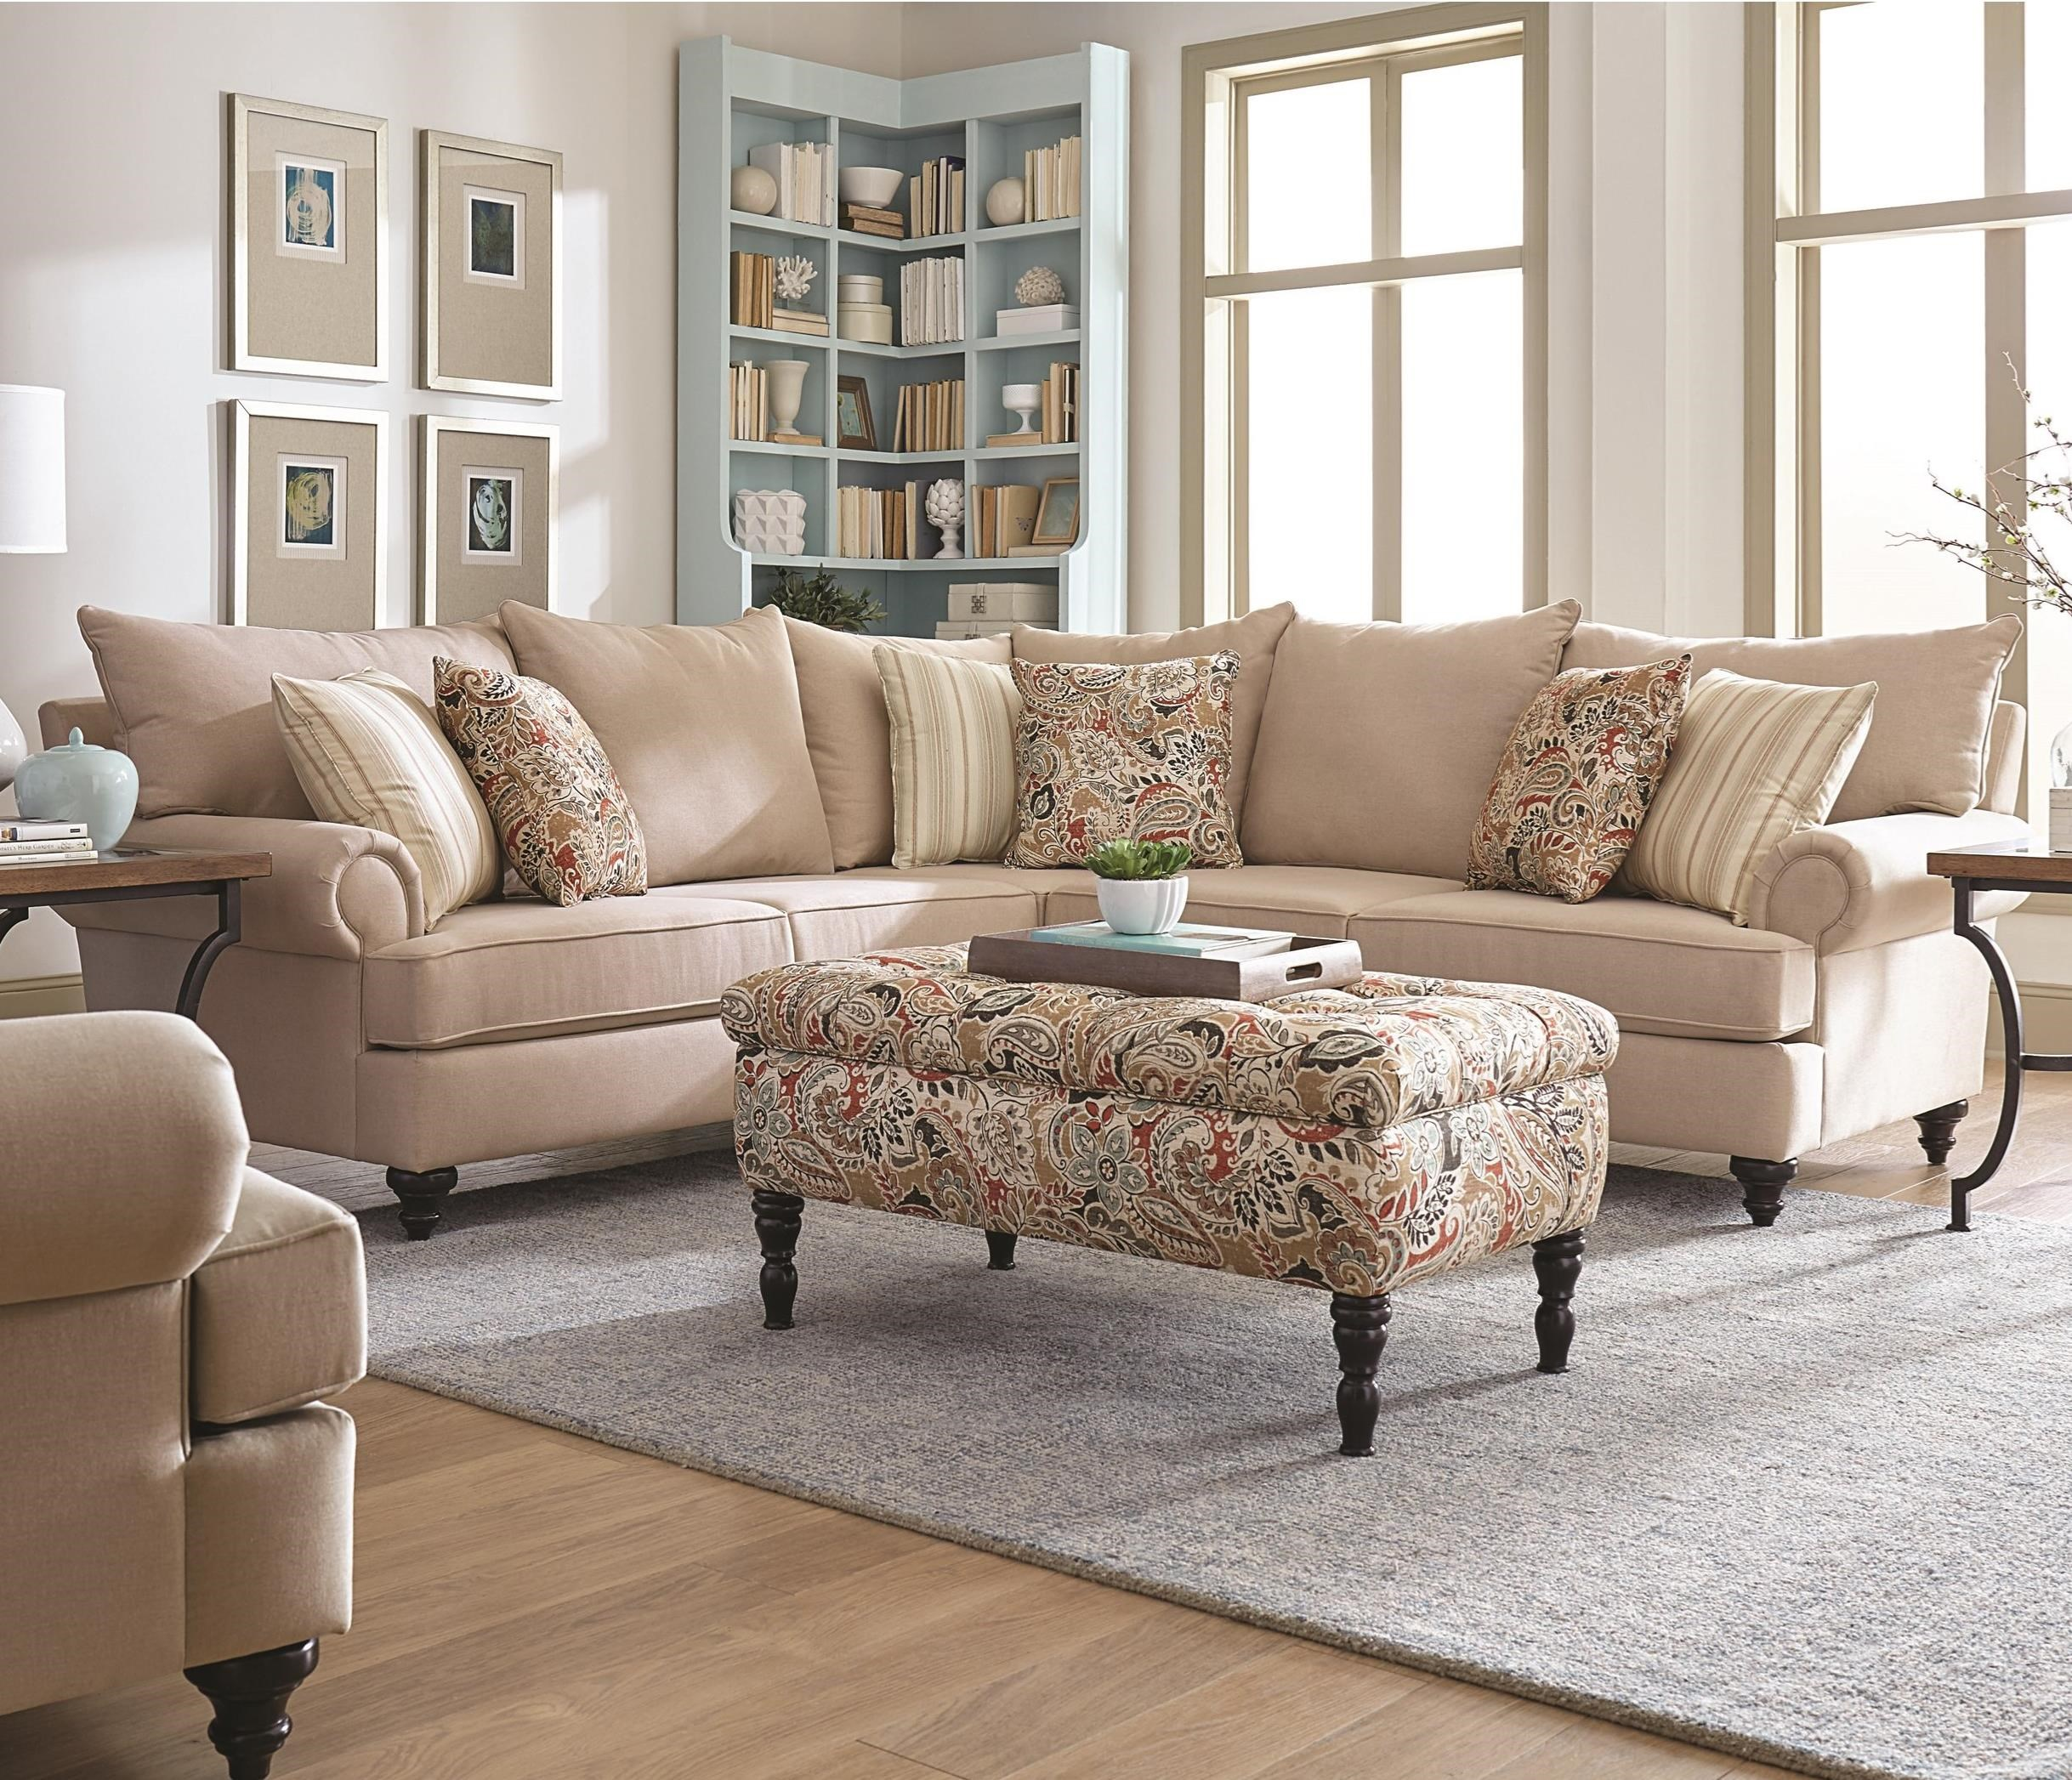 England rosalie sectional sofa dunk bright furniture for England furniture